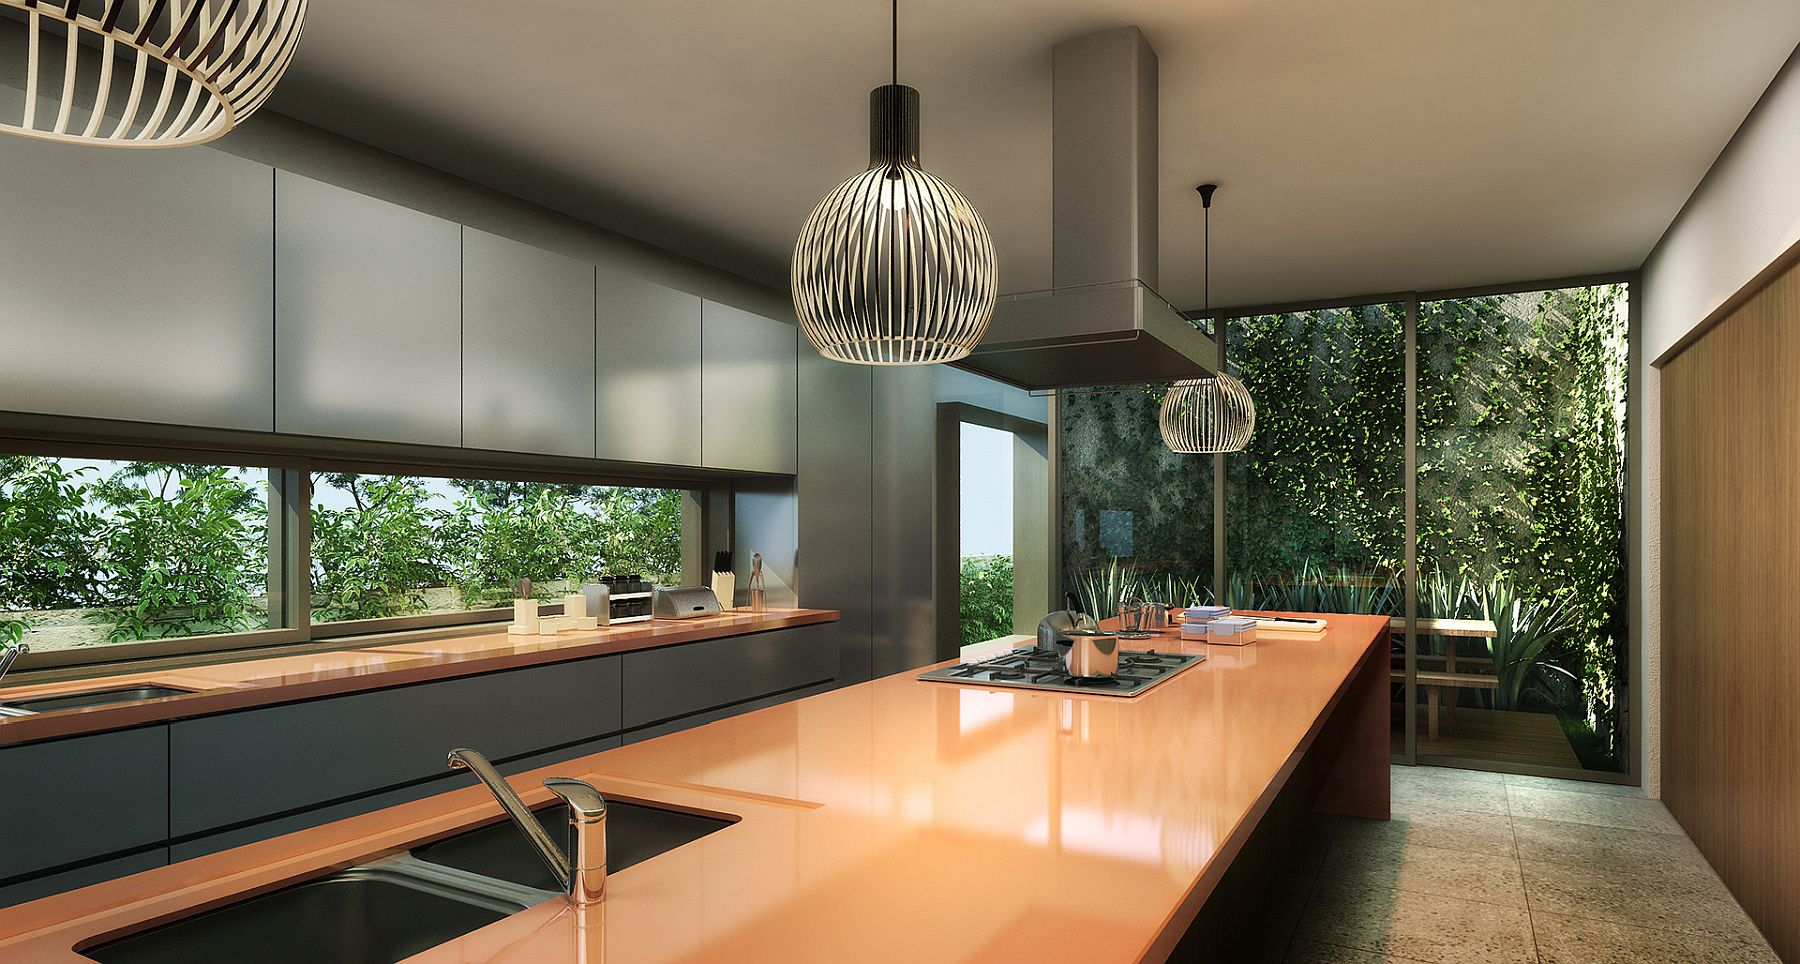 Stunning contemporary kitchen inside the house with a view of the terrace and garden